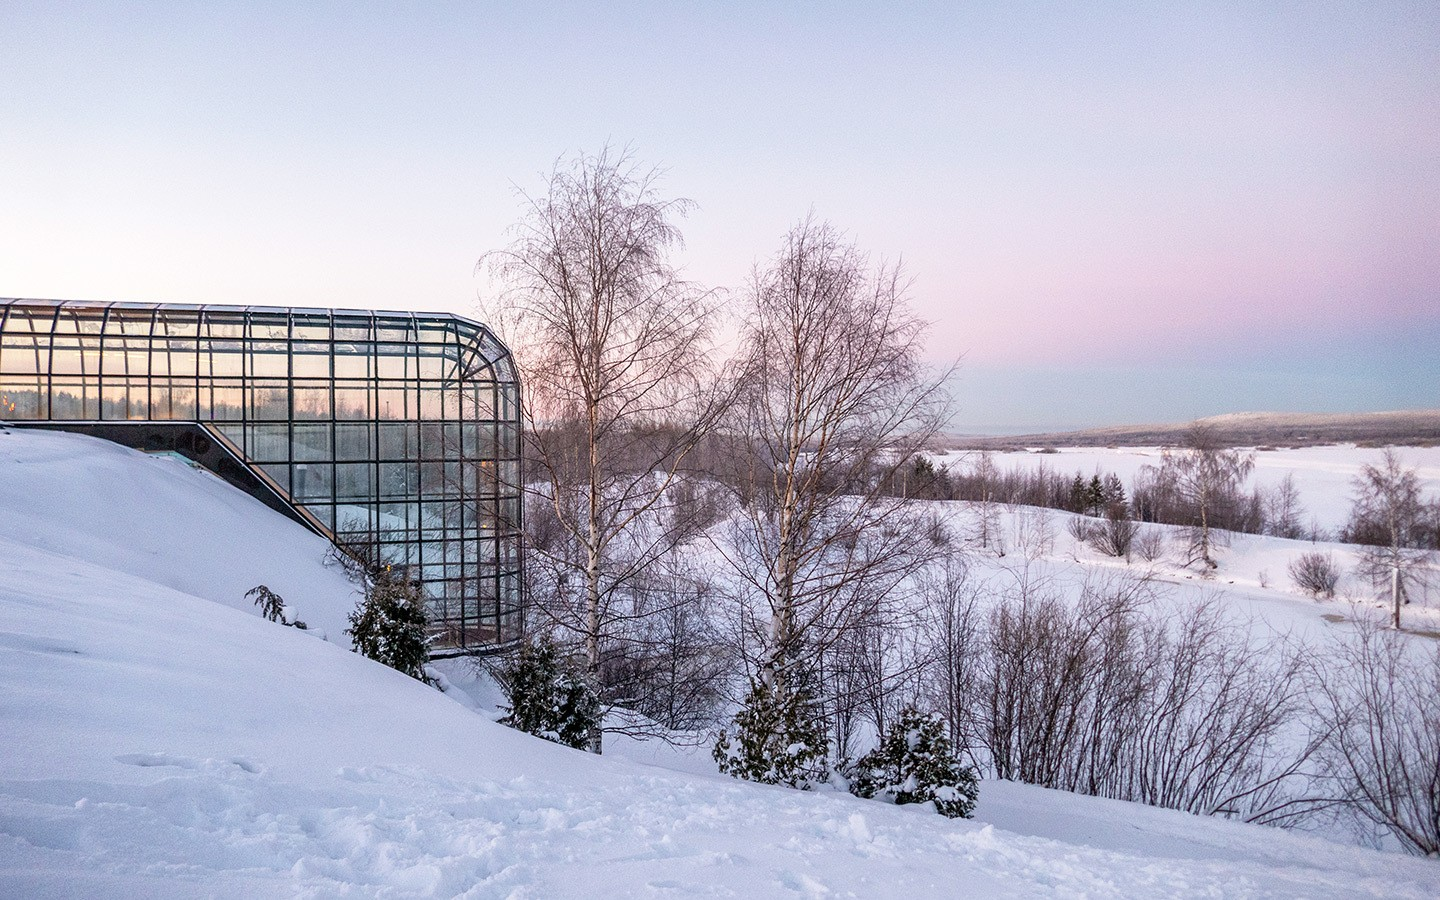 Arktikum Museum and Science Centre in Rovaniemi, Finland